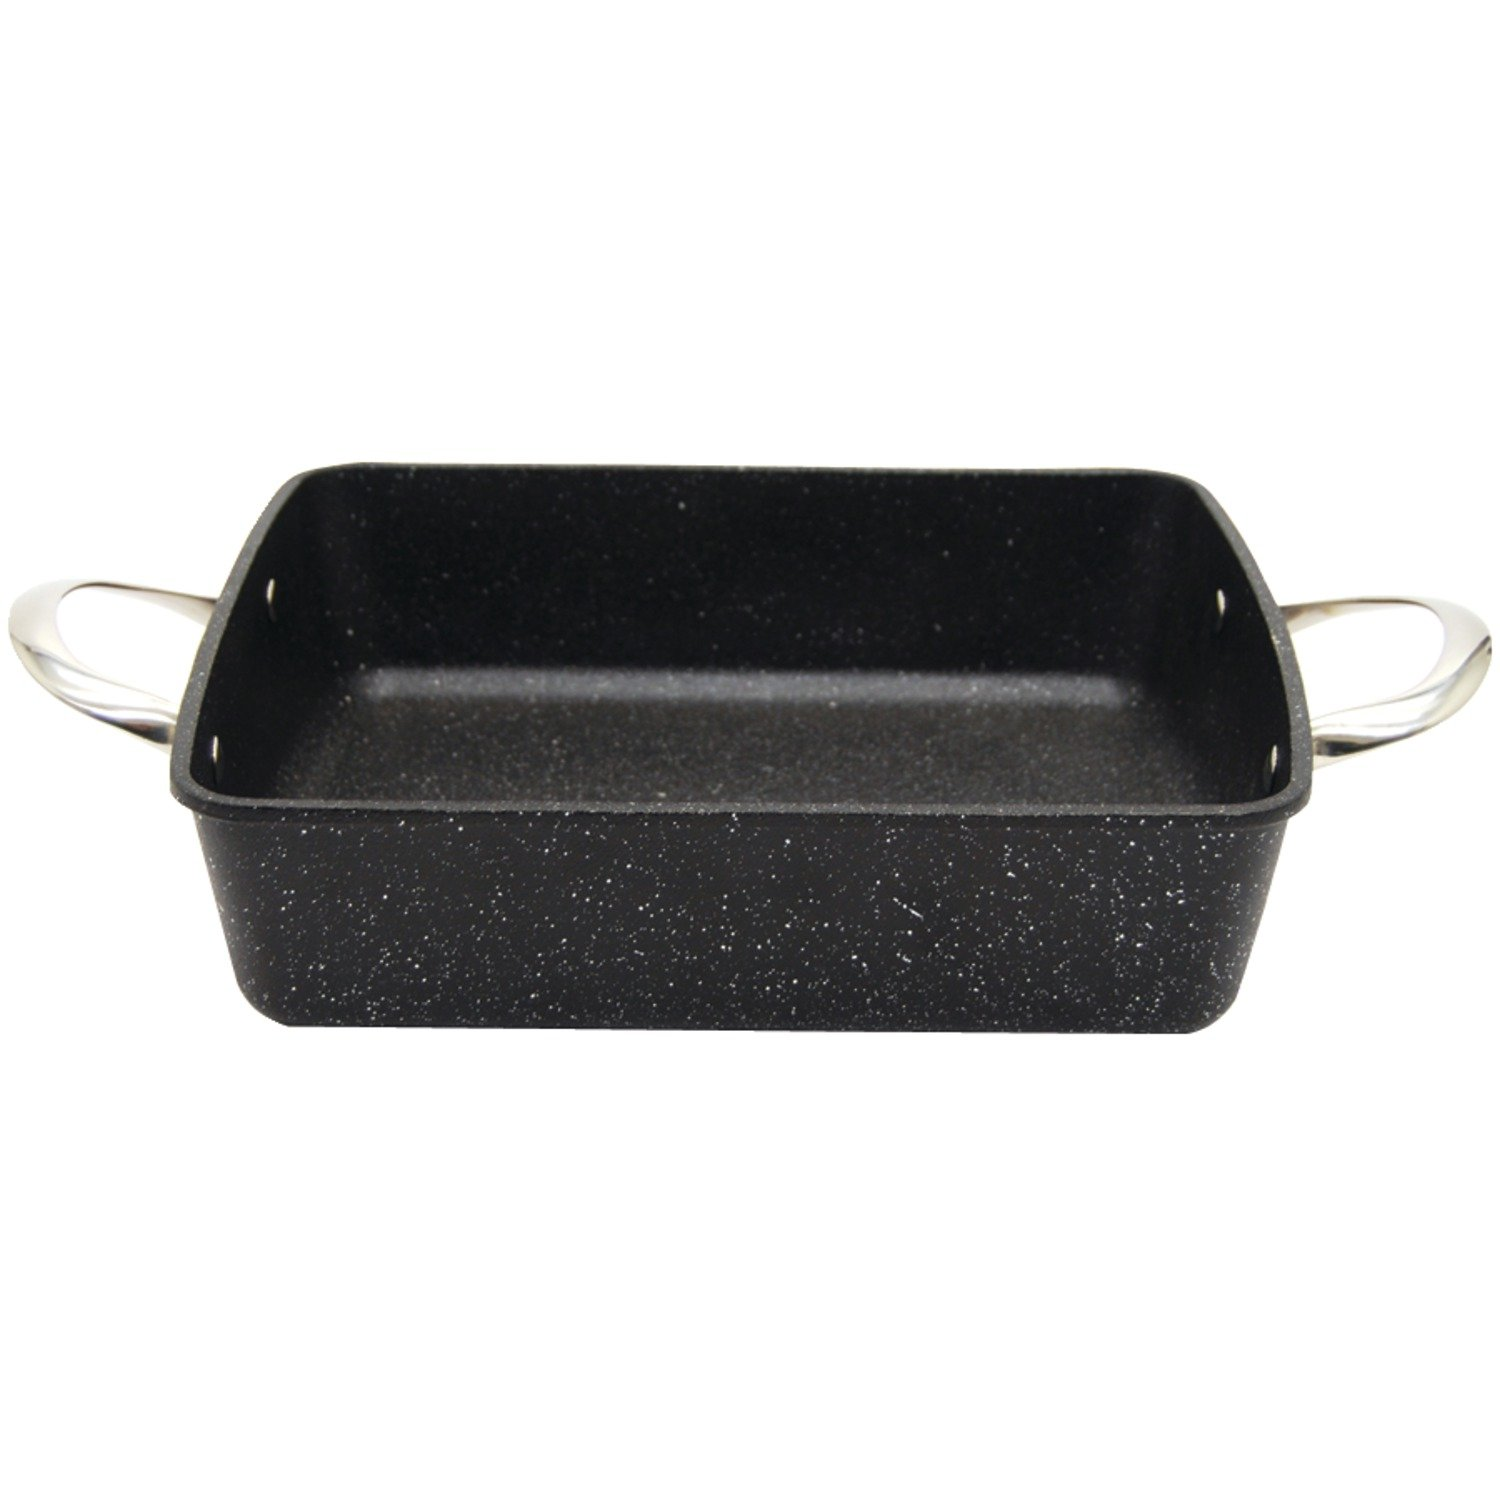 Starfrit The Rock Oven/Bakeware, 9'' by 9'' by 2'' Square, Black